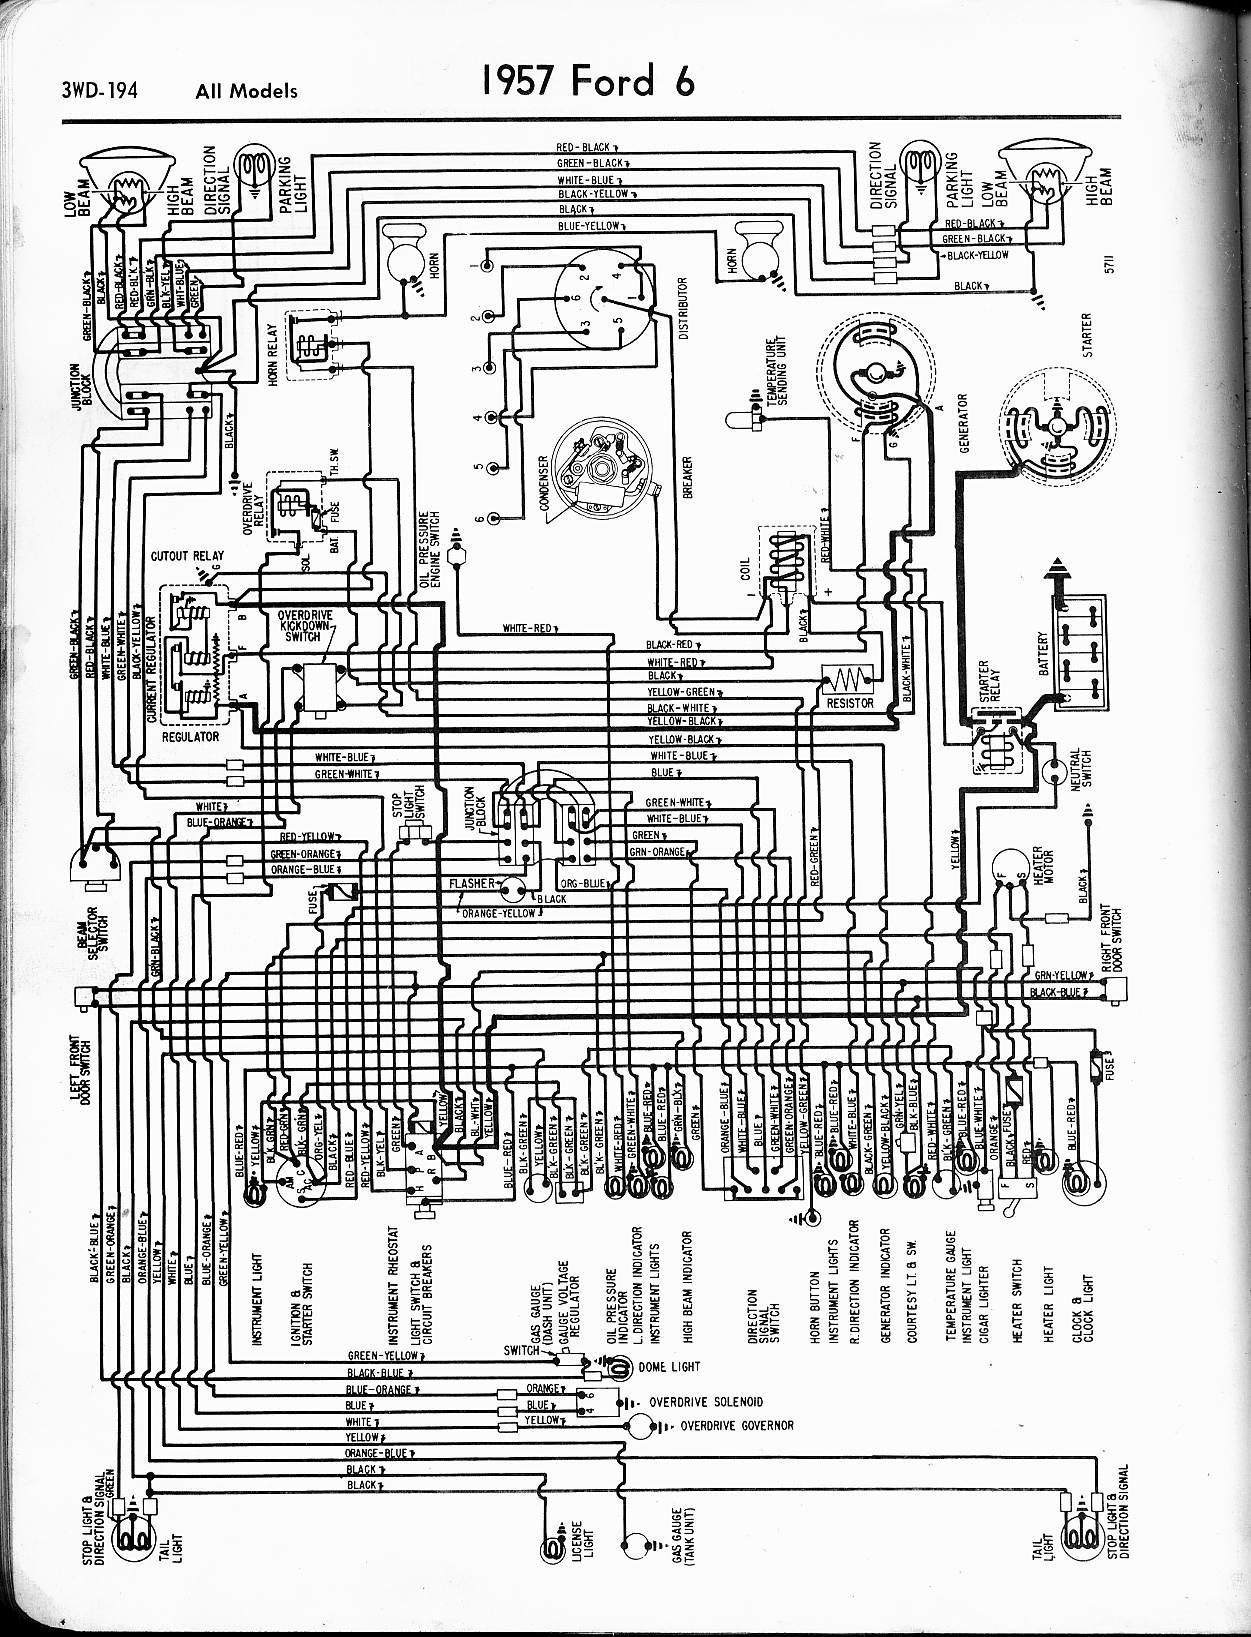 2003 Ford Escape Engine Diagram New Radio Wiring Harness Factory Parts Of